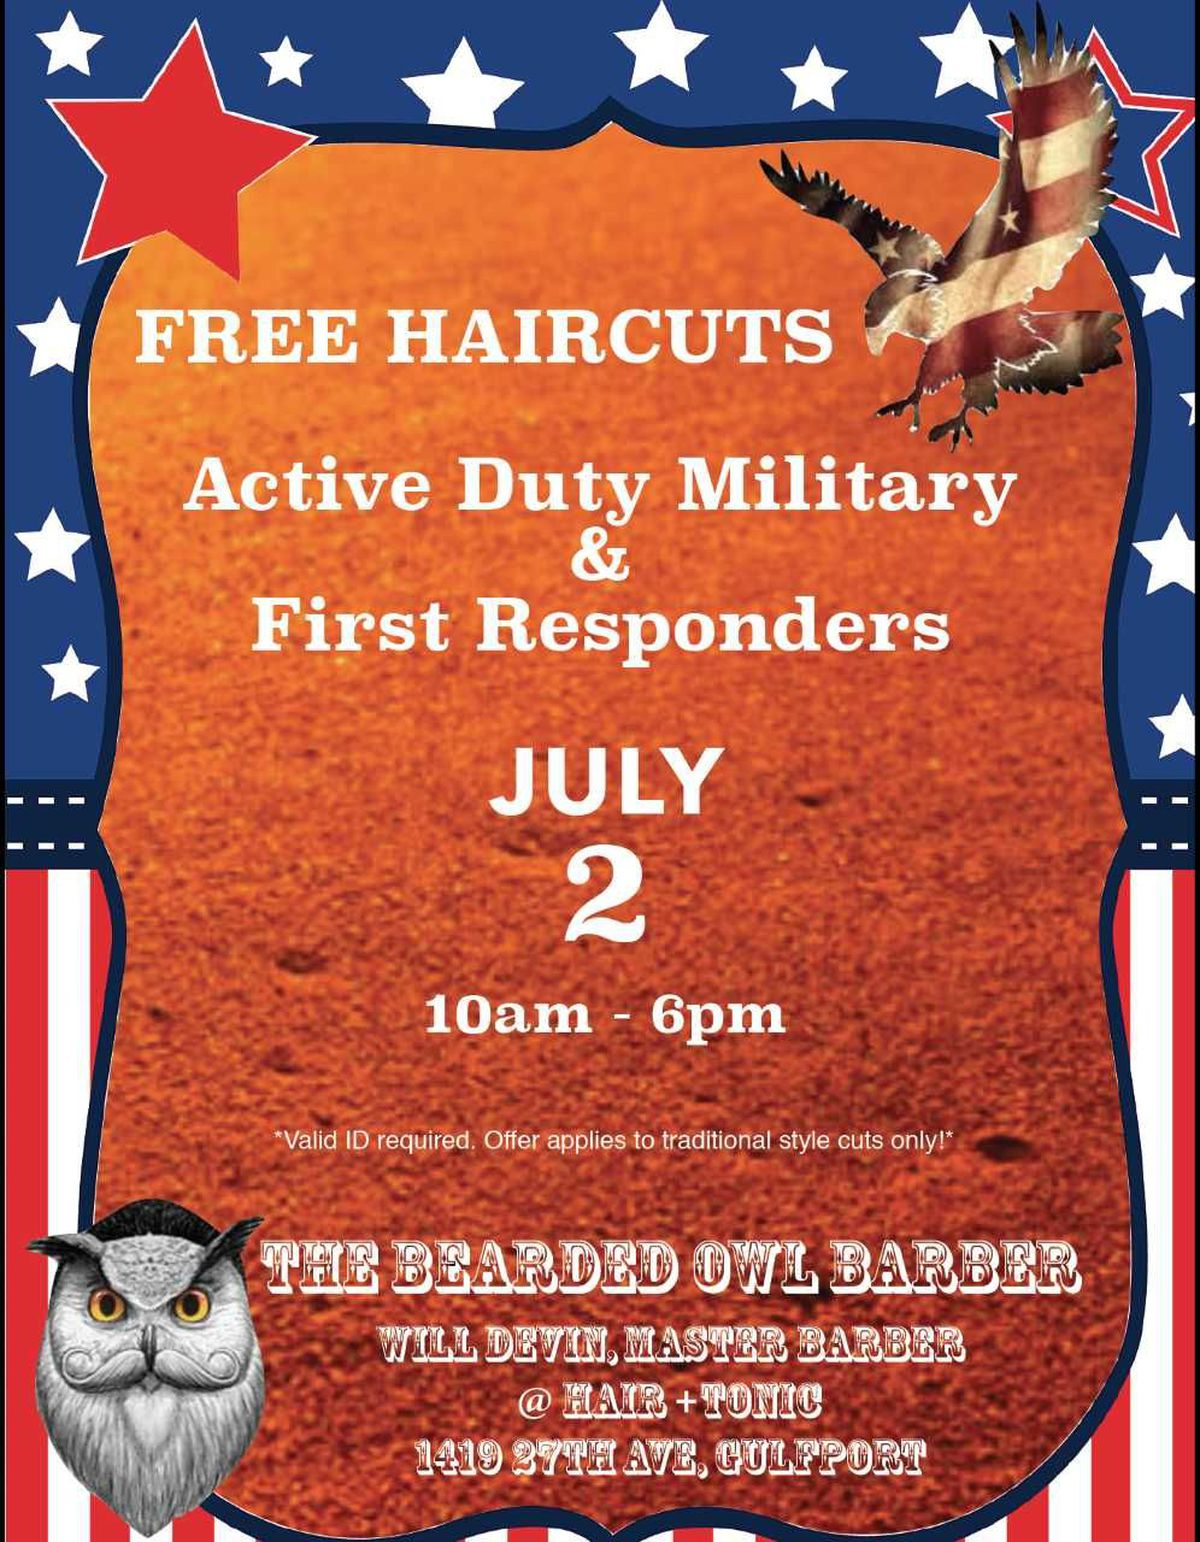 Gulfport Barber Offers Free Haircuts To Military And First Responders